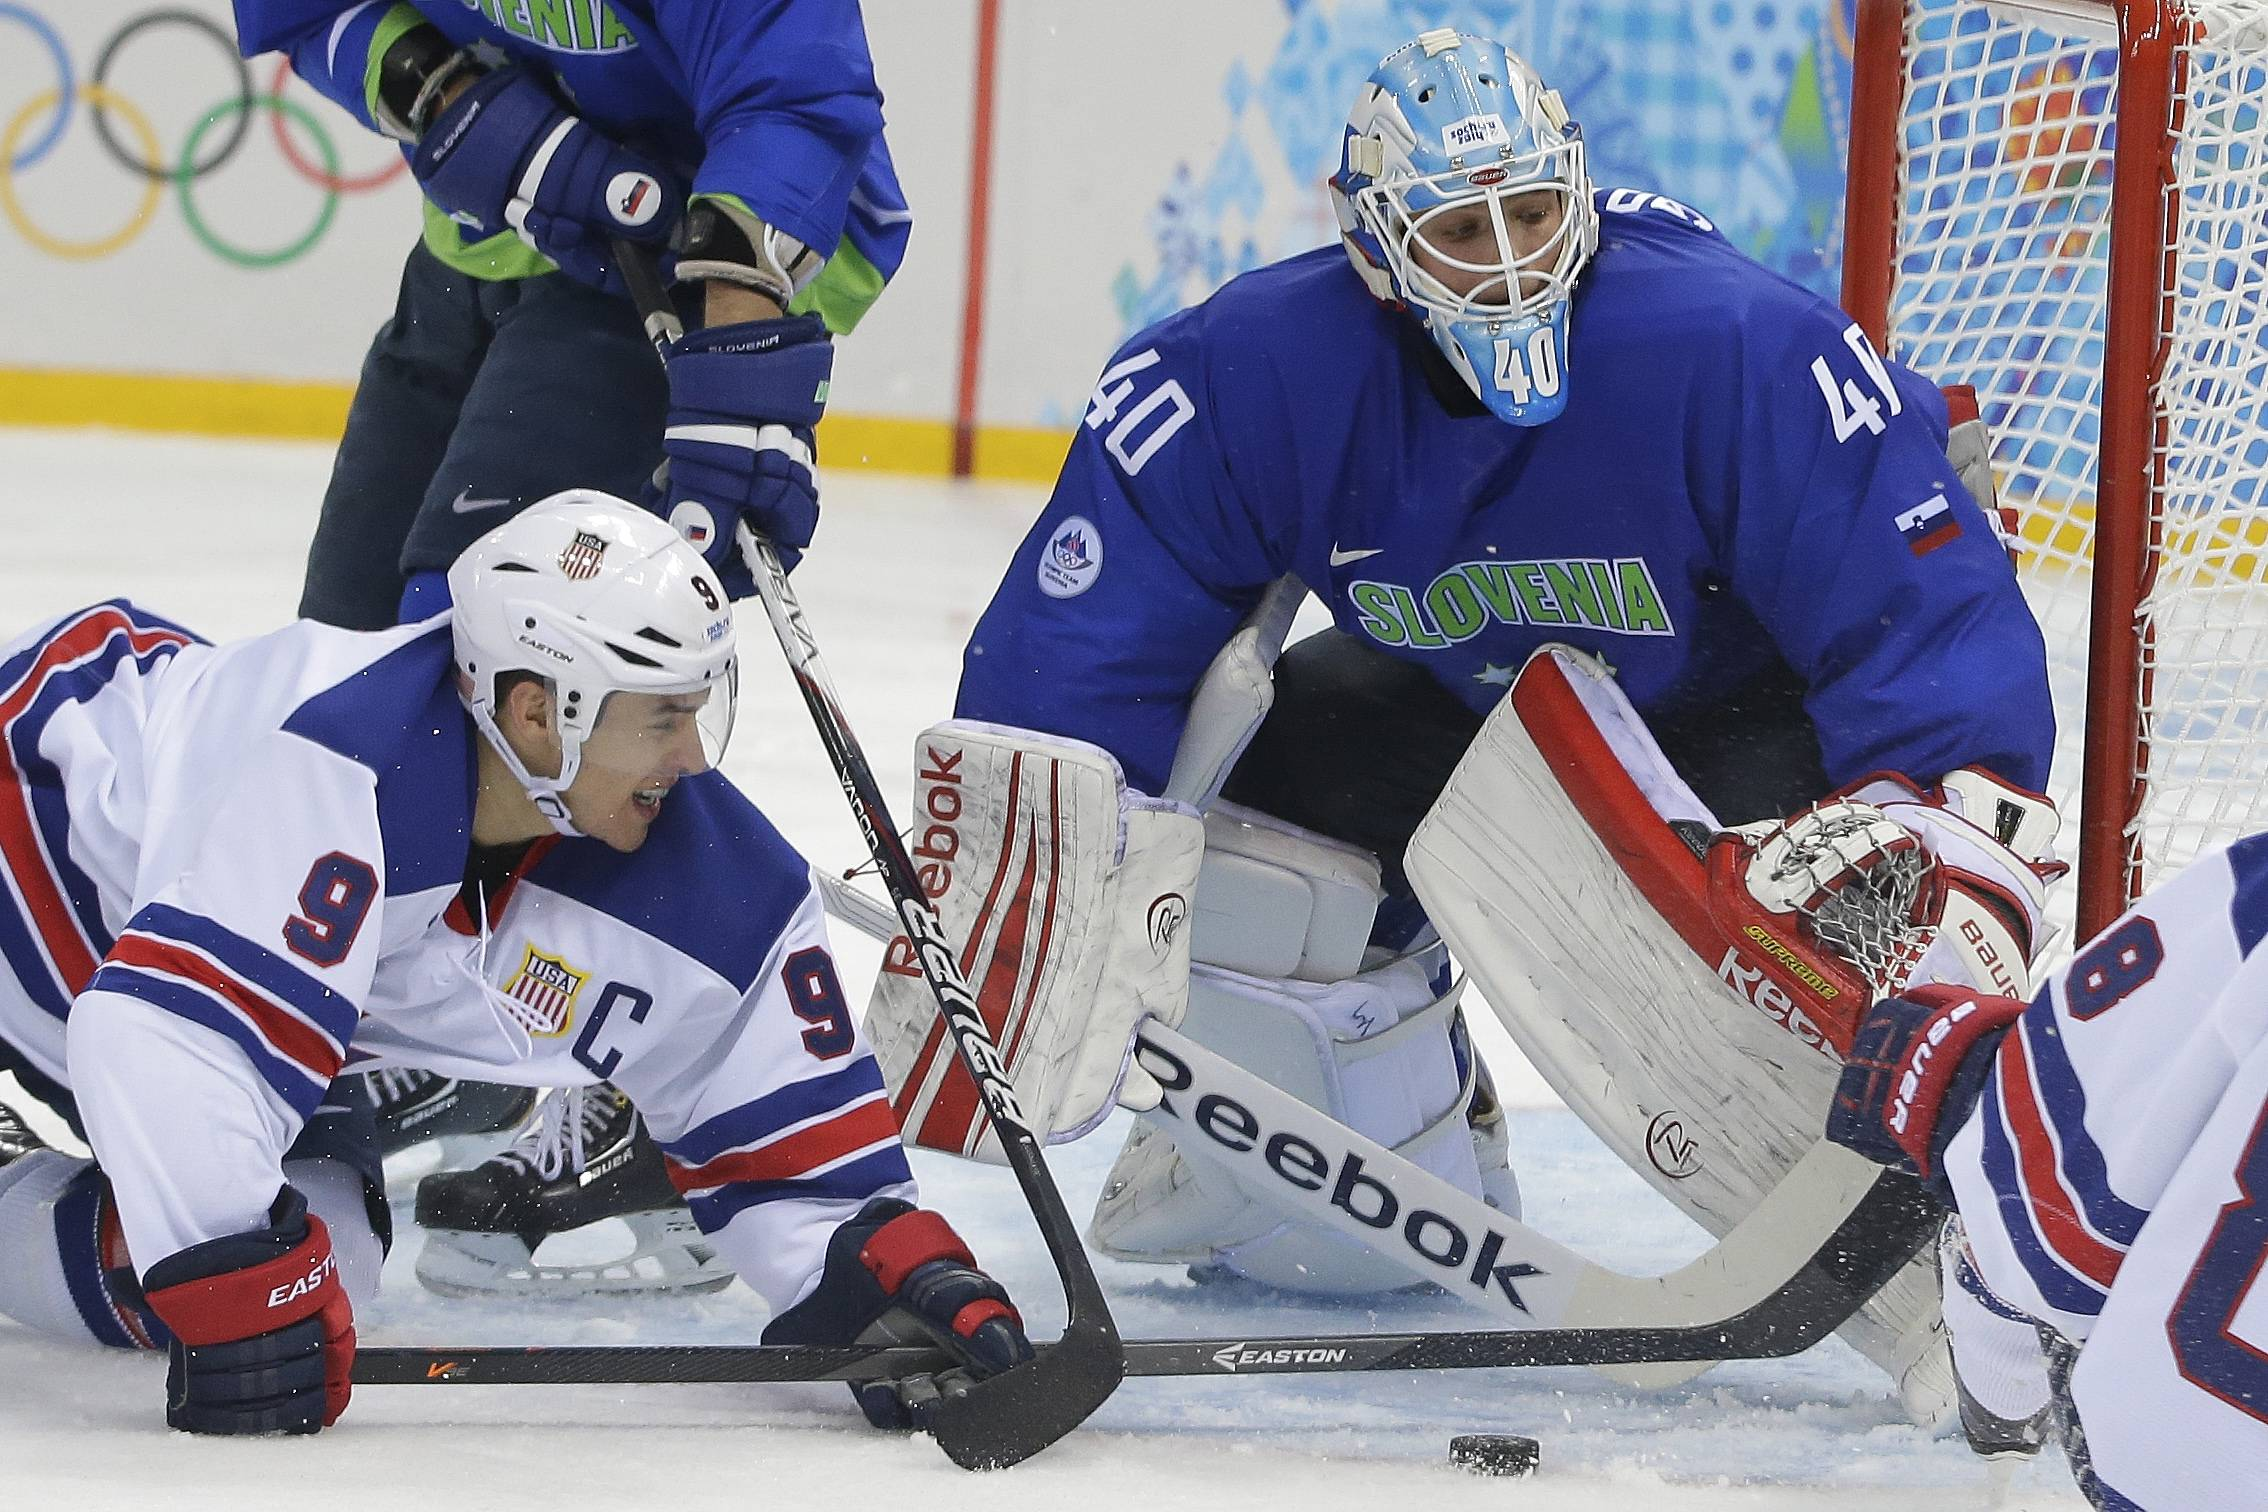 USA forward Zach Parise reaches for a loose puck in front of Slovenia goaltender Luka Gracnar during the 2014 Winter Olympics men's ice hockey game at Shayba Arena Sunday, Feb. 16, 2014, in Sochi, Russia.